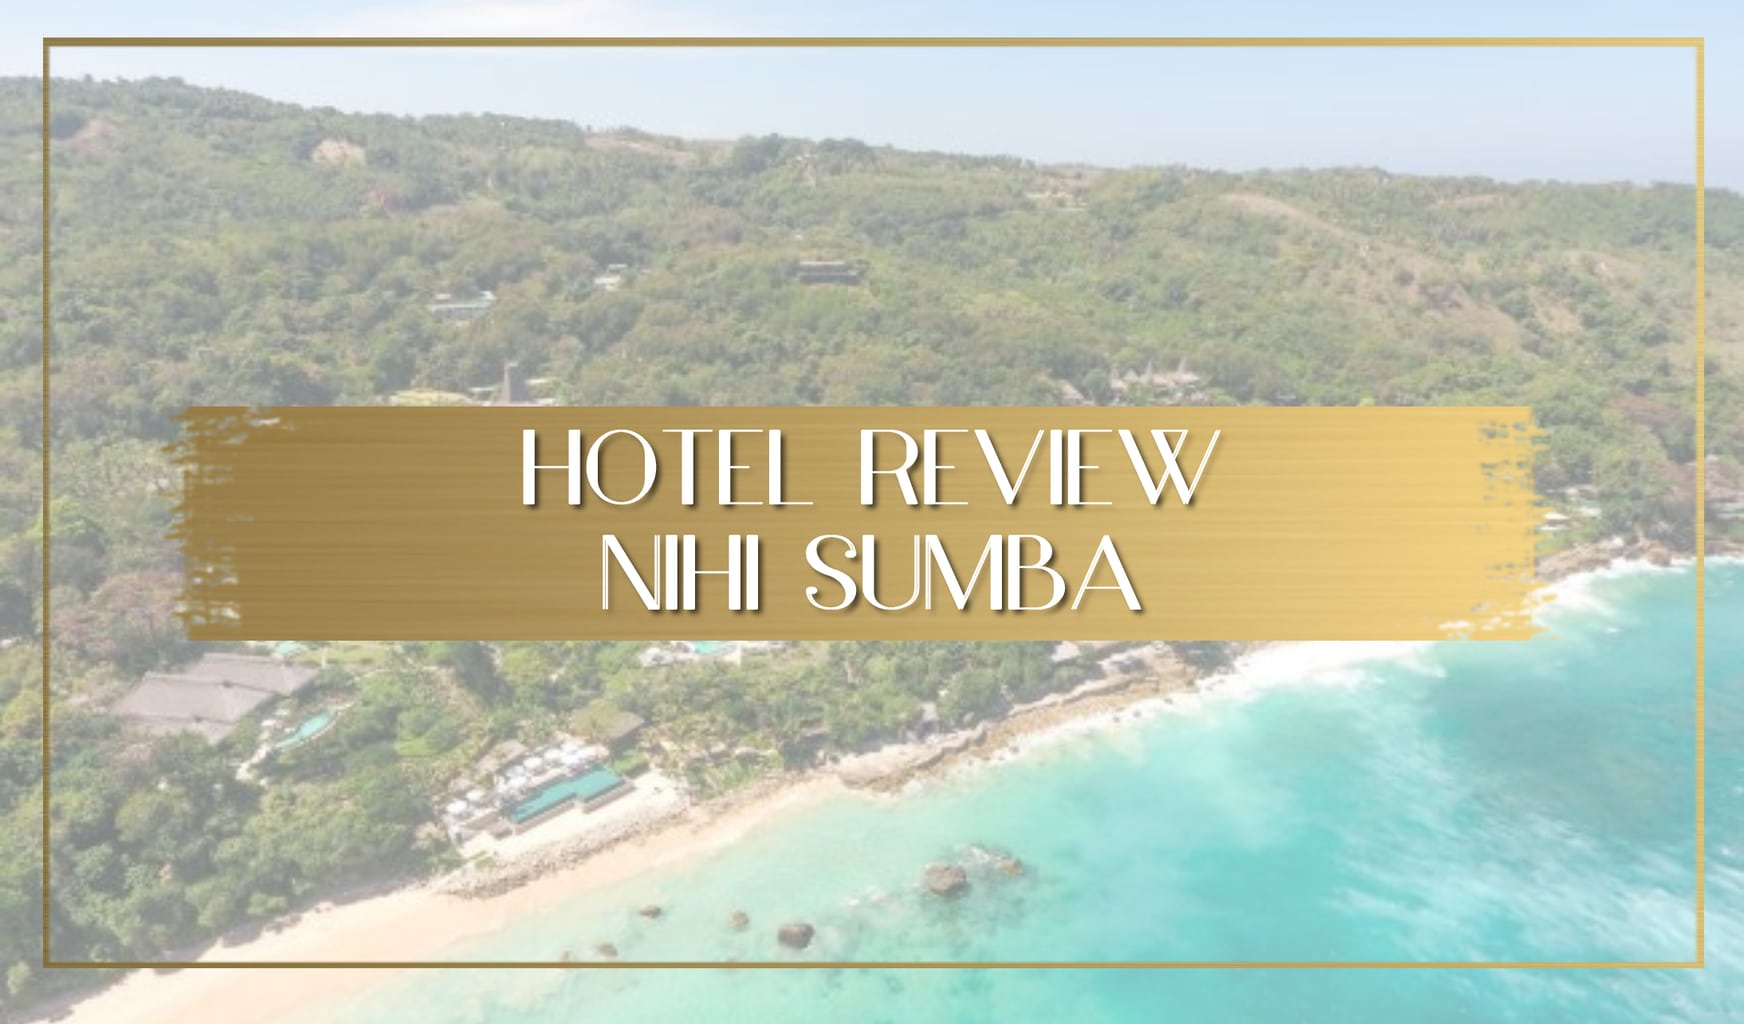 Nihi Sumba hotel review main